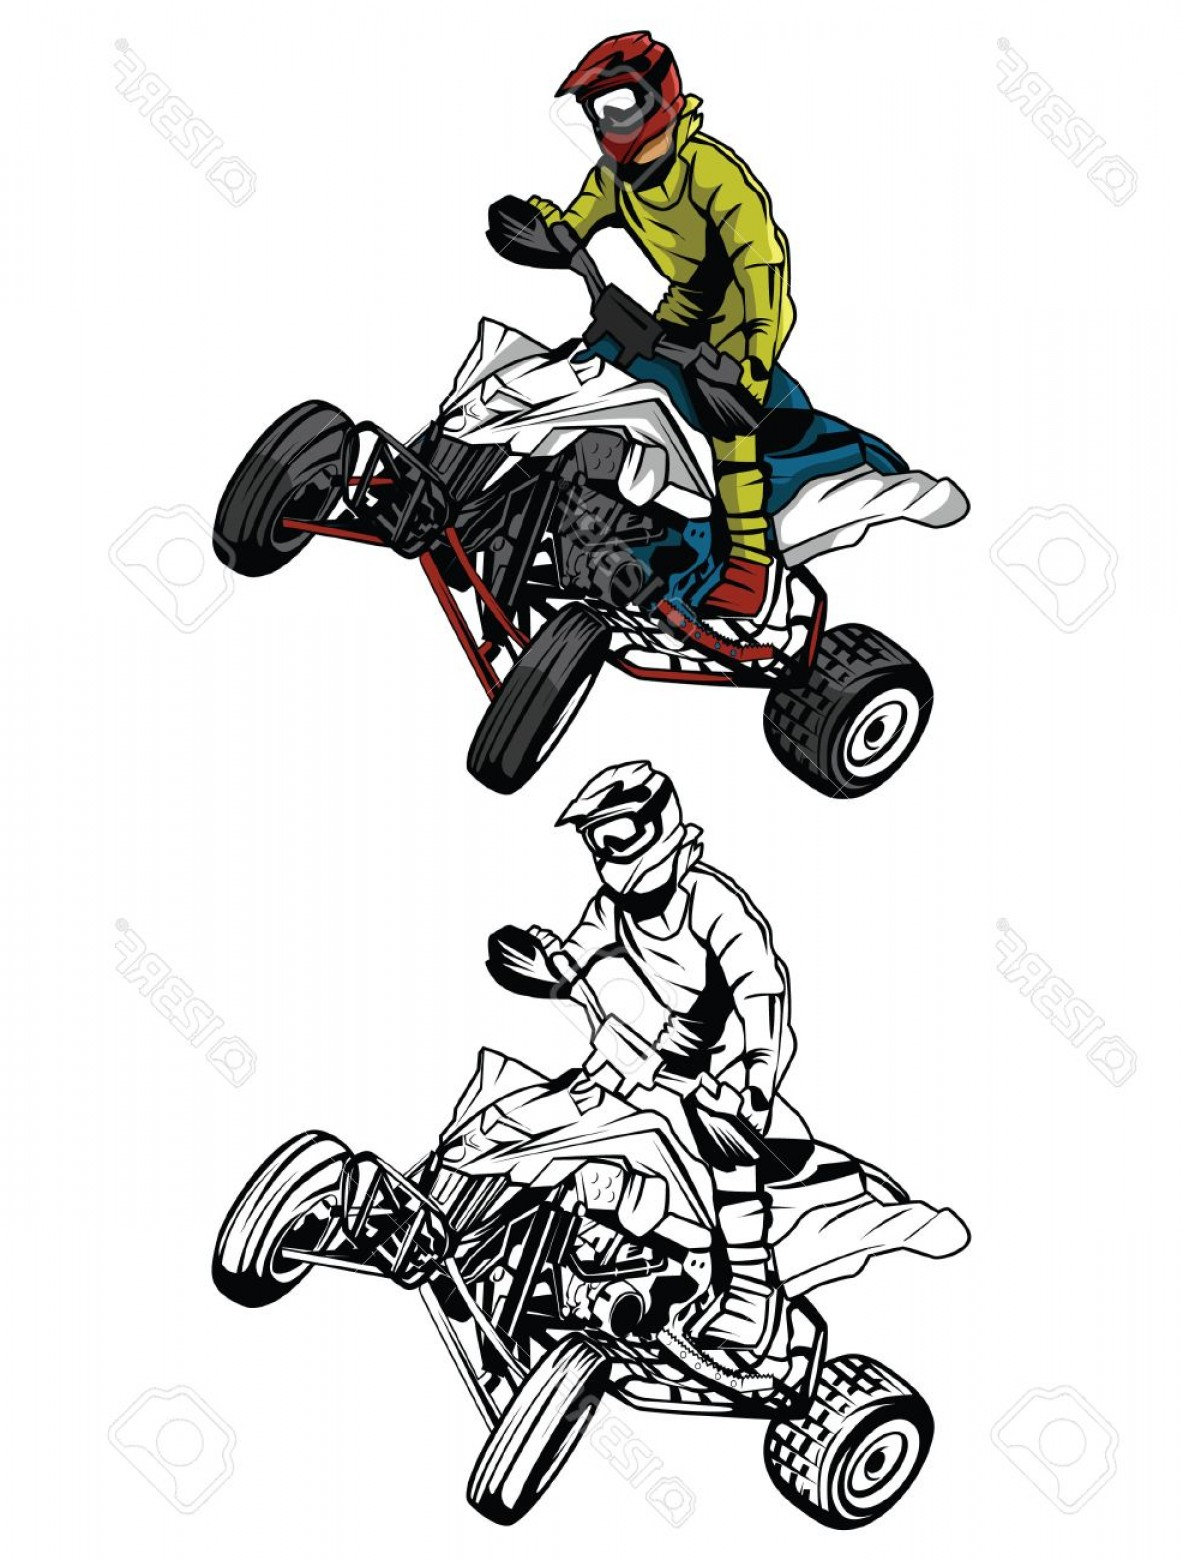 ATV Rider Vector: Photostock Vector Coloring Book Atv Moto Rider Cartoon Character